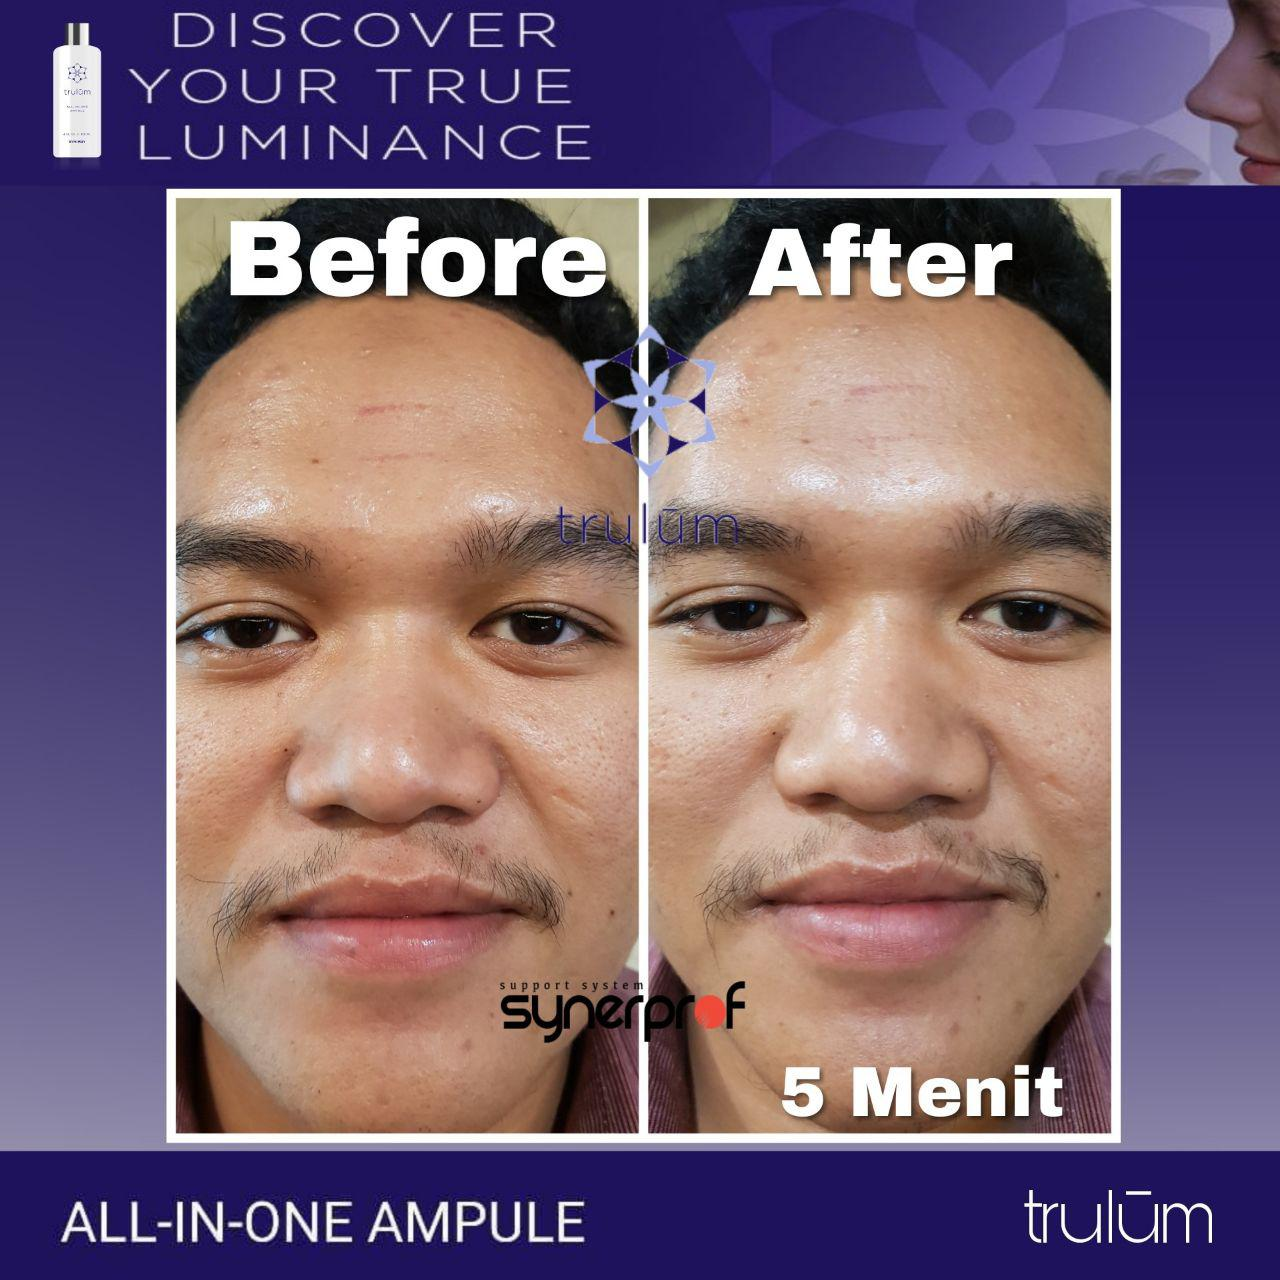 Jual Trulum All In One Ampoule Di Telukbetung Barat WA: 08112338376